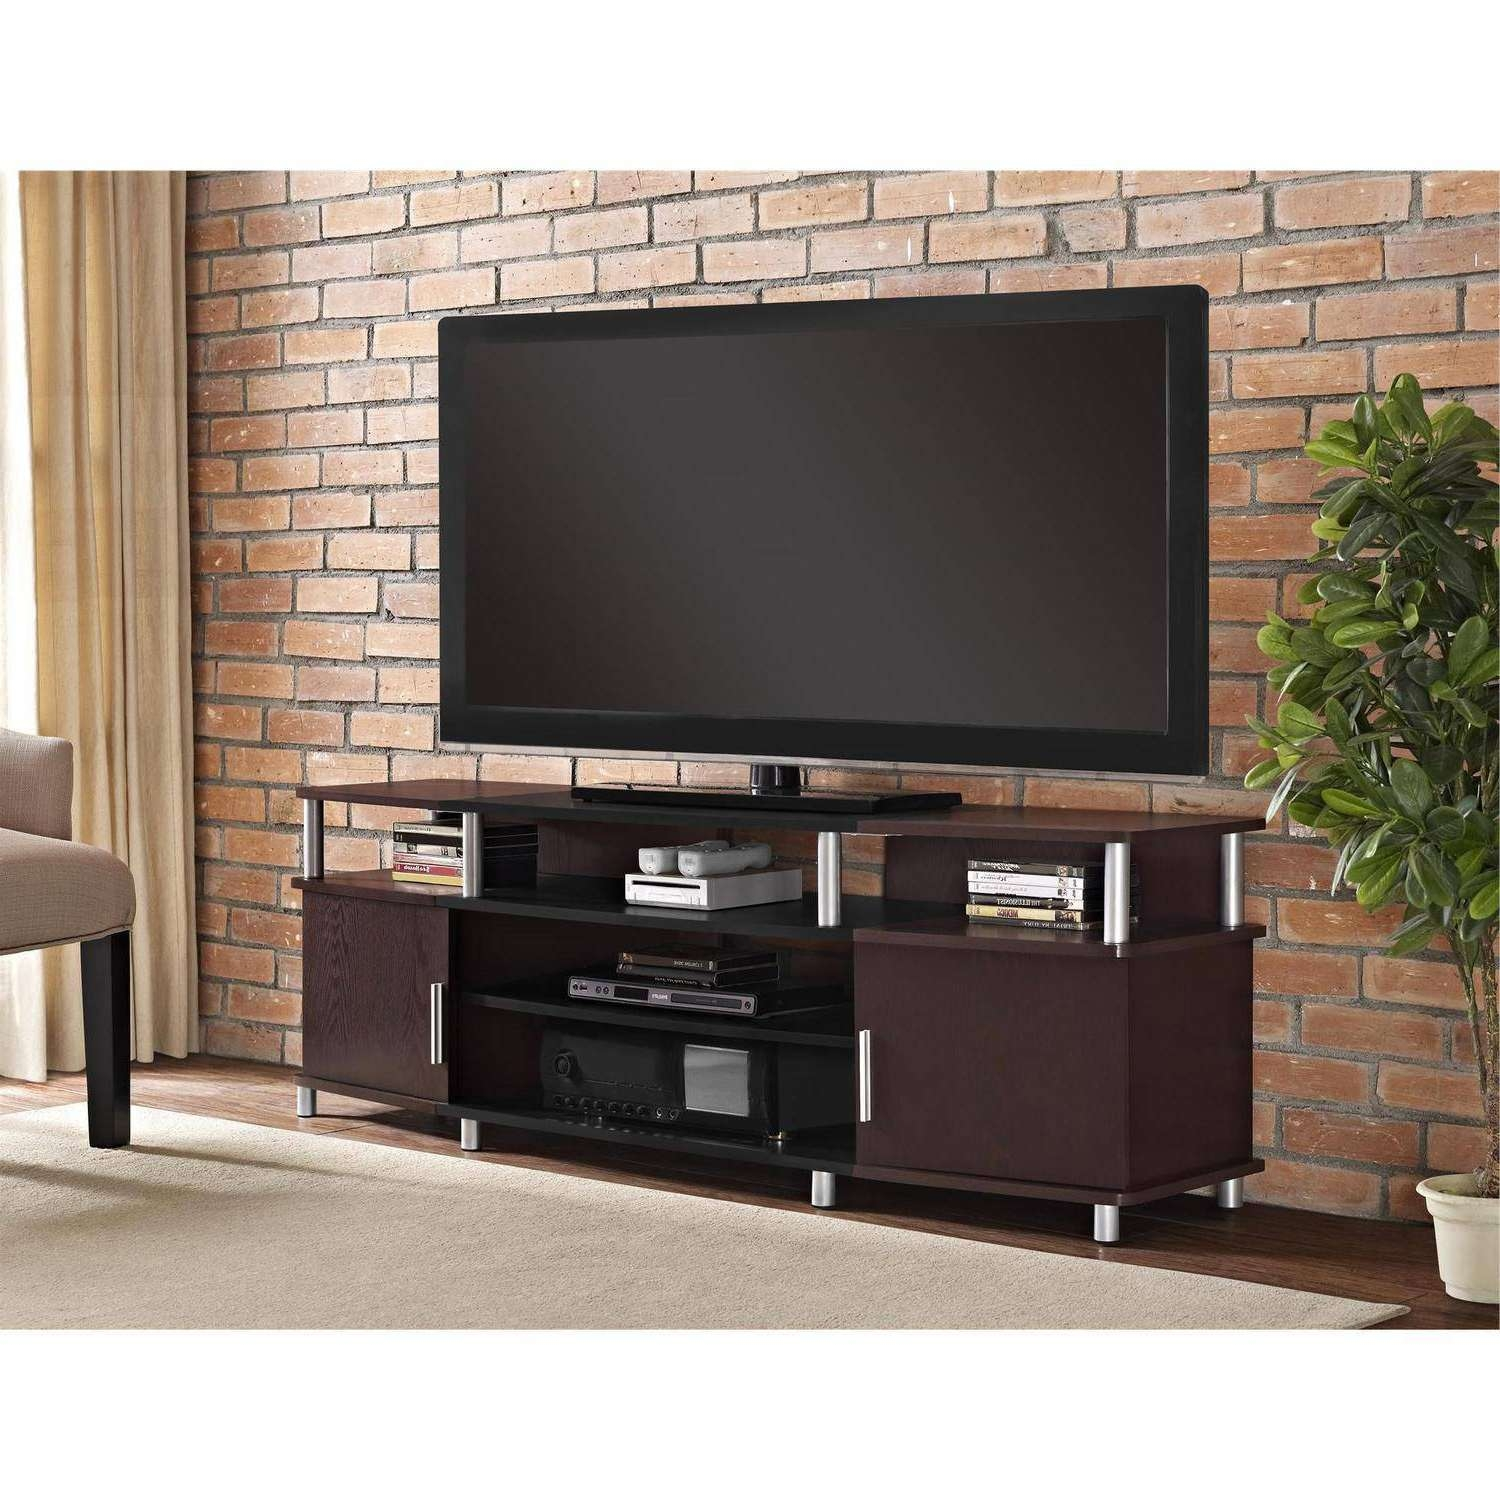 Tv Stands & Entertainment Centers – Walmart For Wooden Tv Stands For 55 Inch Flat Screen (View 9 of 15)